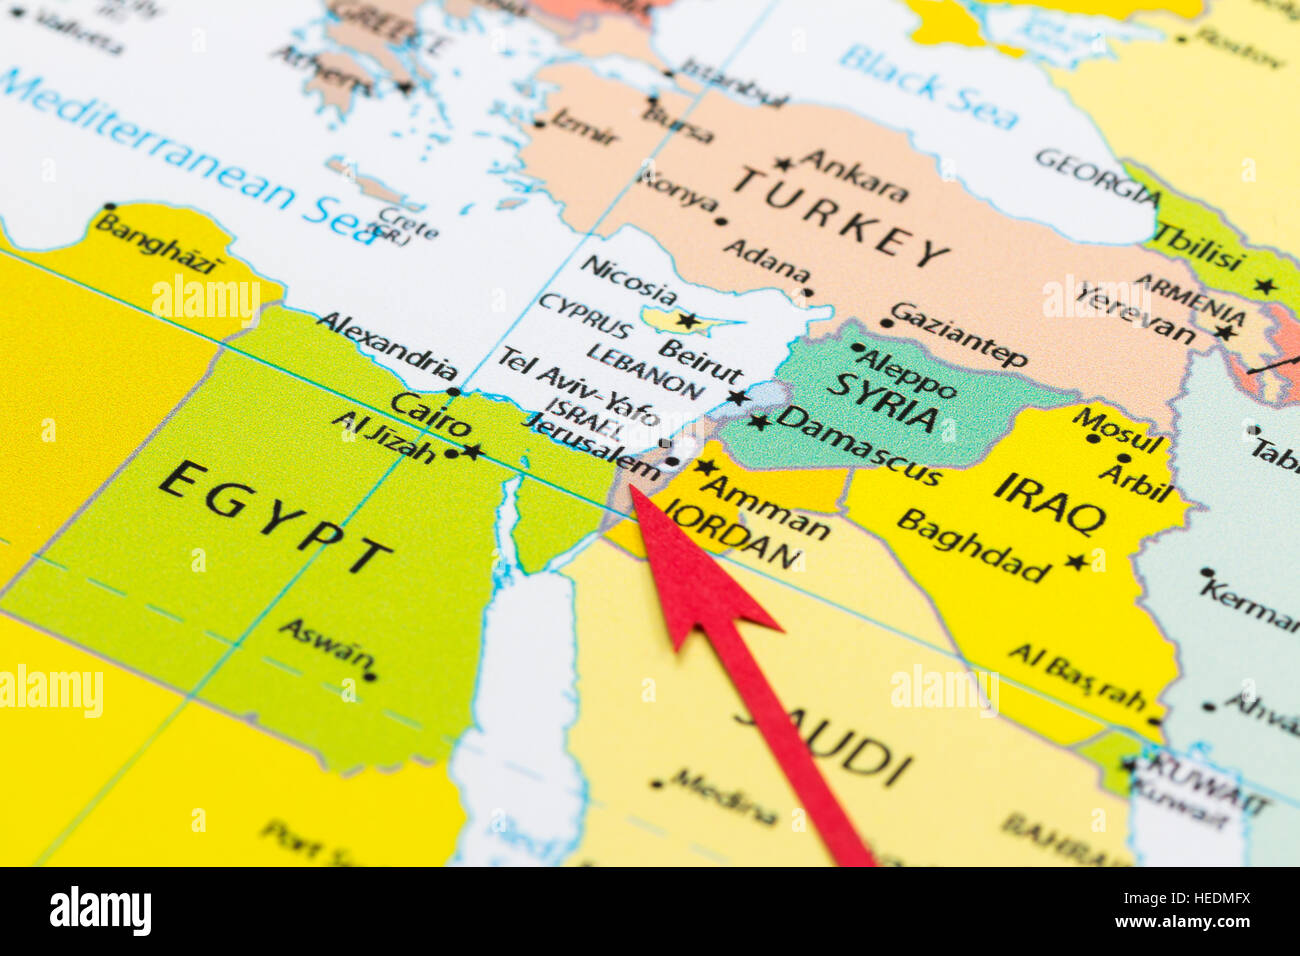 Red arrow pointing Israel on the map